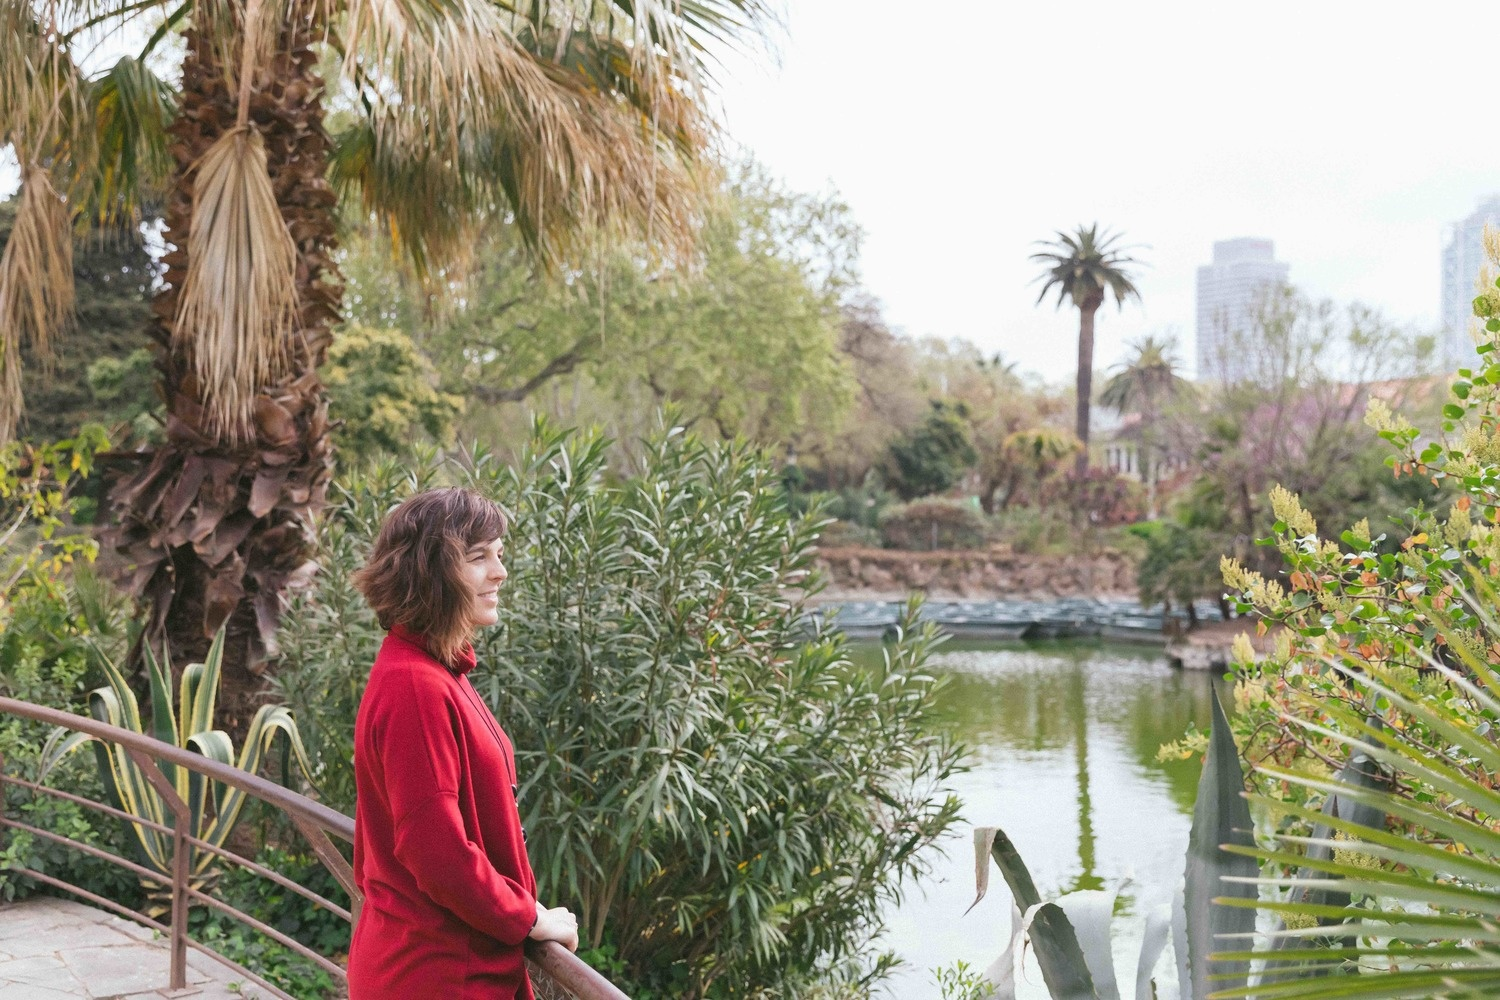 My Barcelona: 'The city is so much richer than it seems'